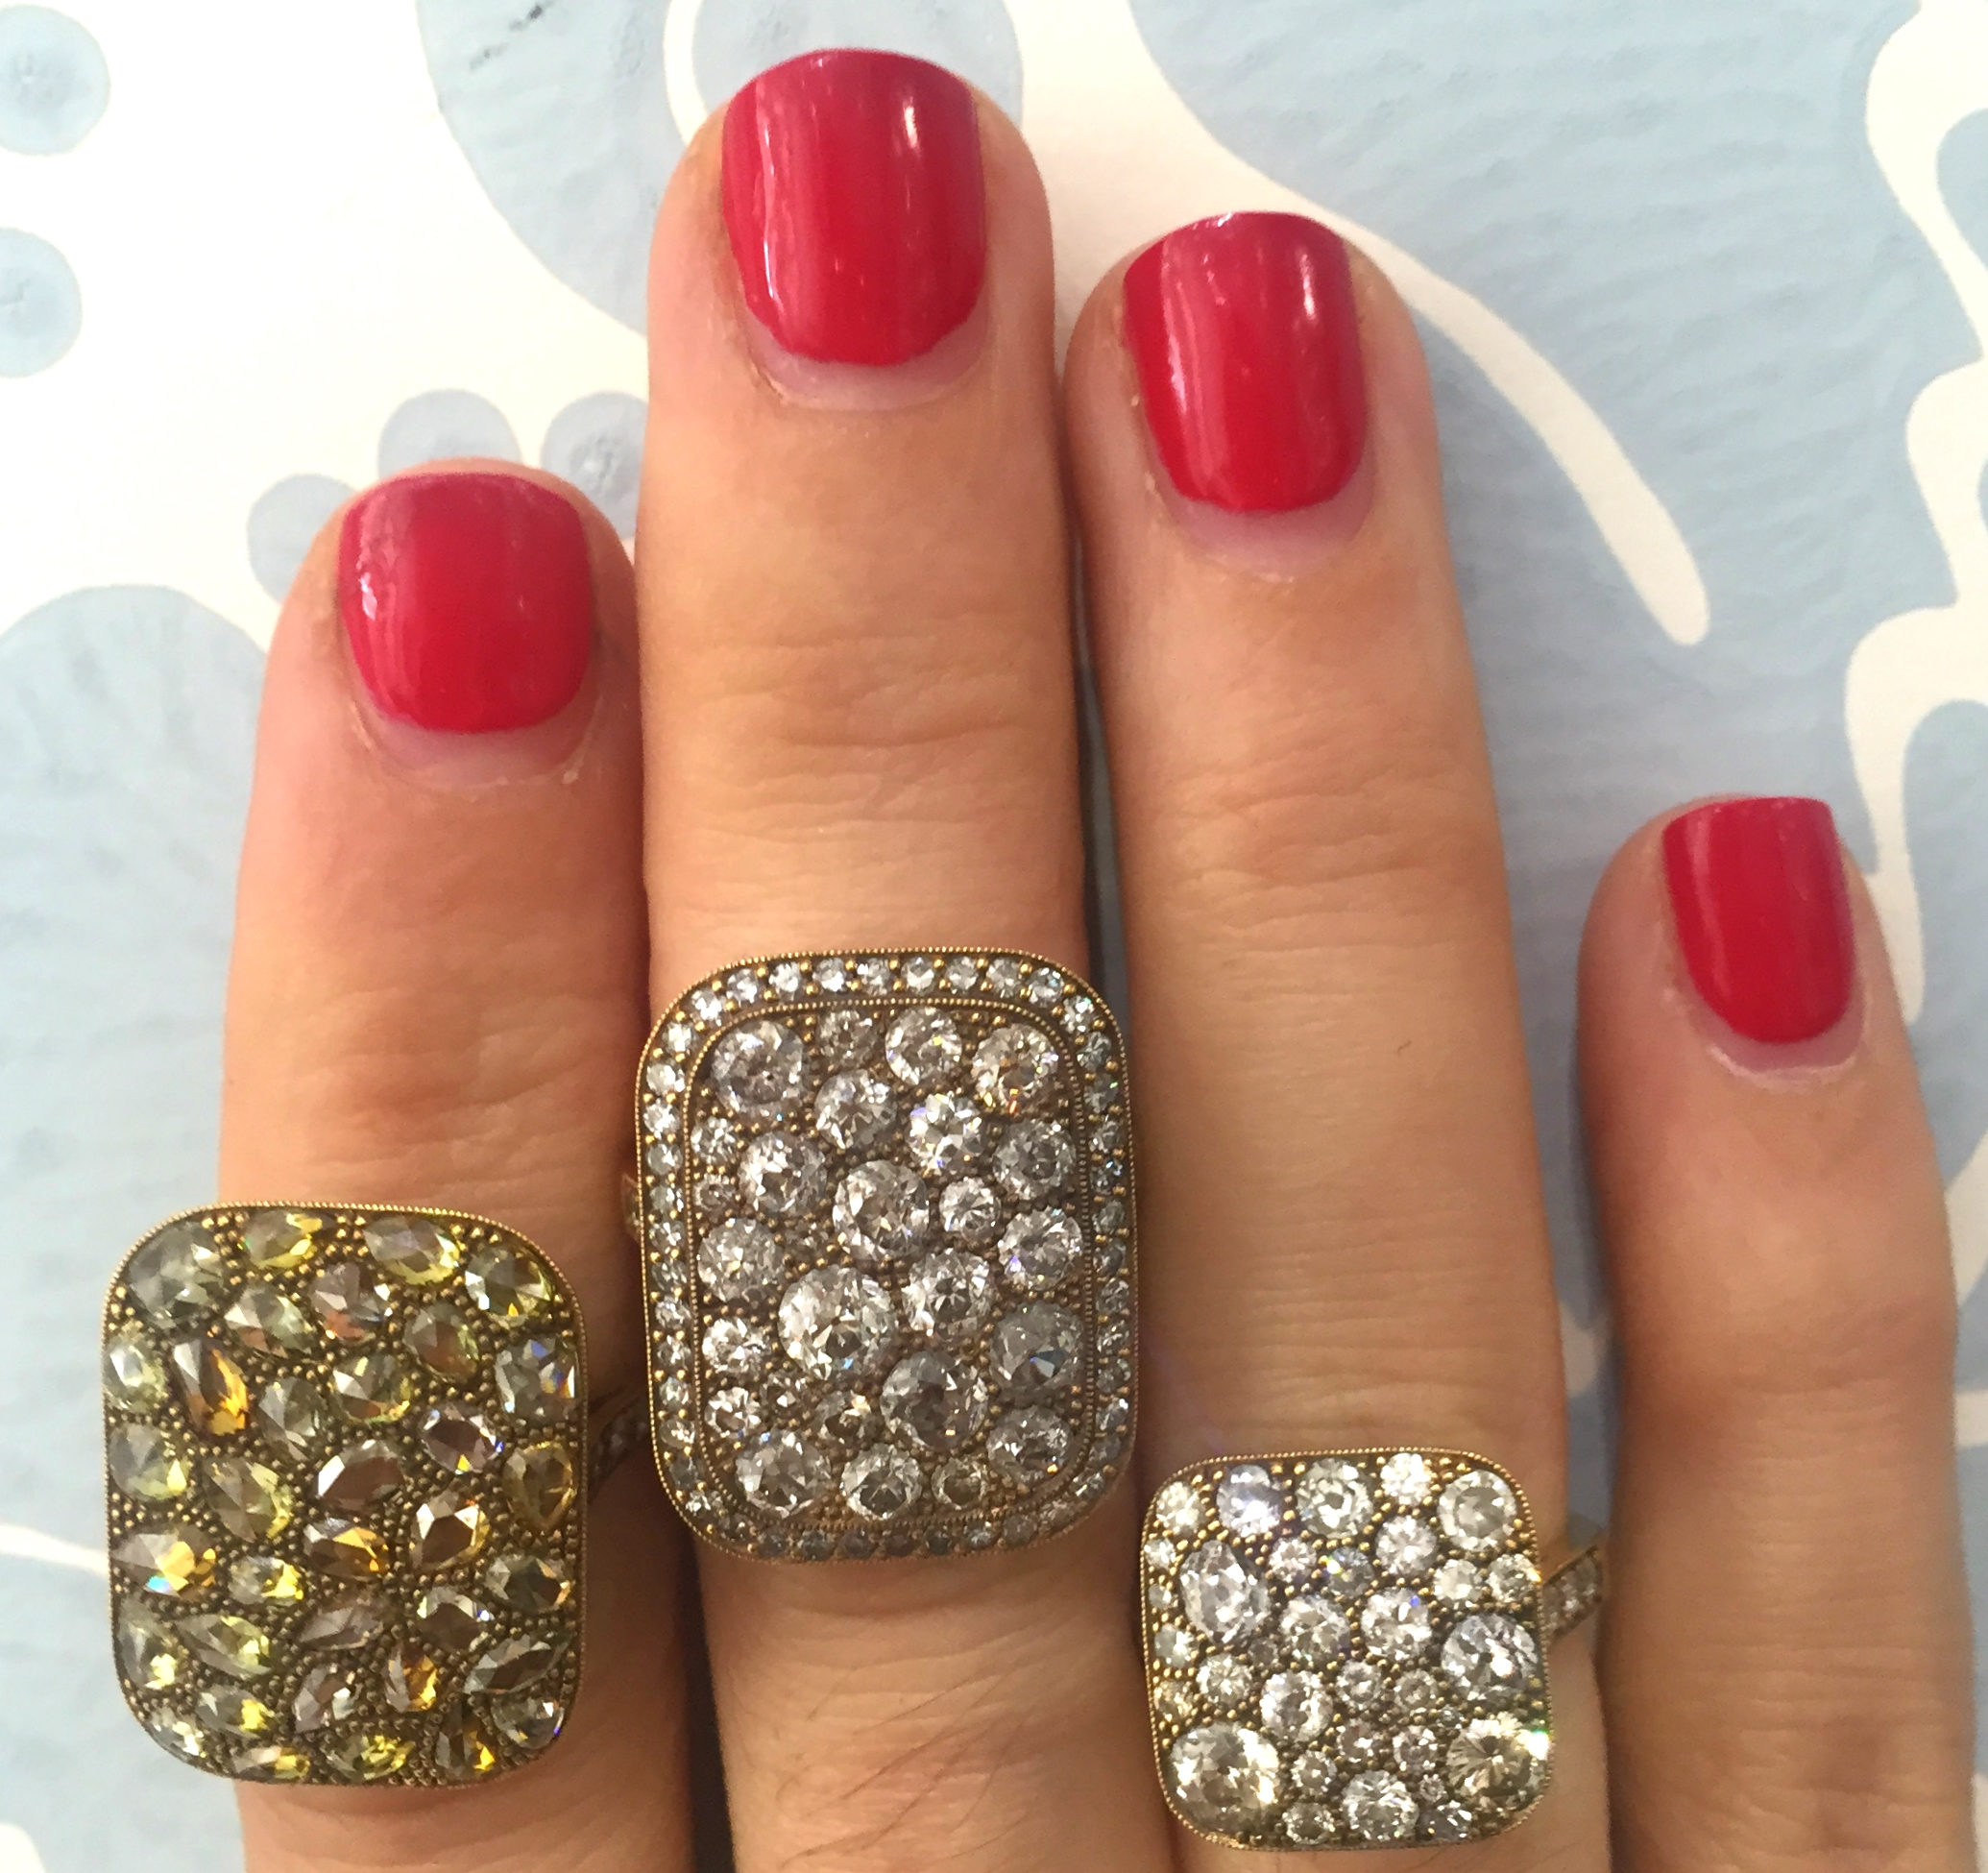 A few more lovelies from the Cobblestone Collection by Single Stone.